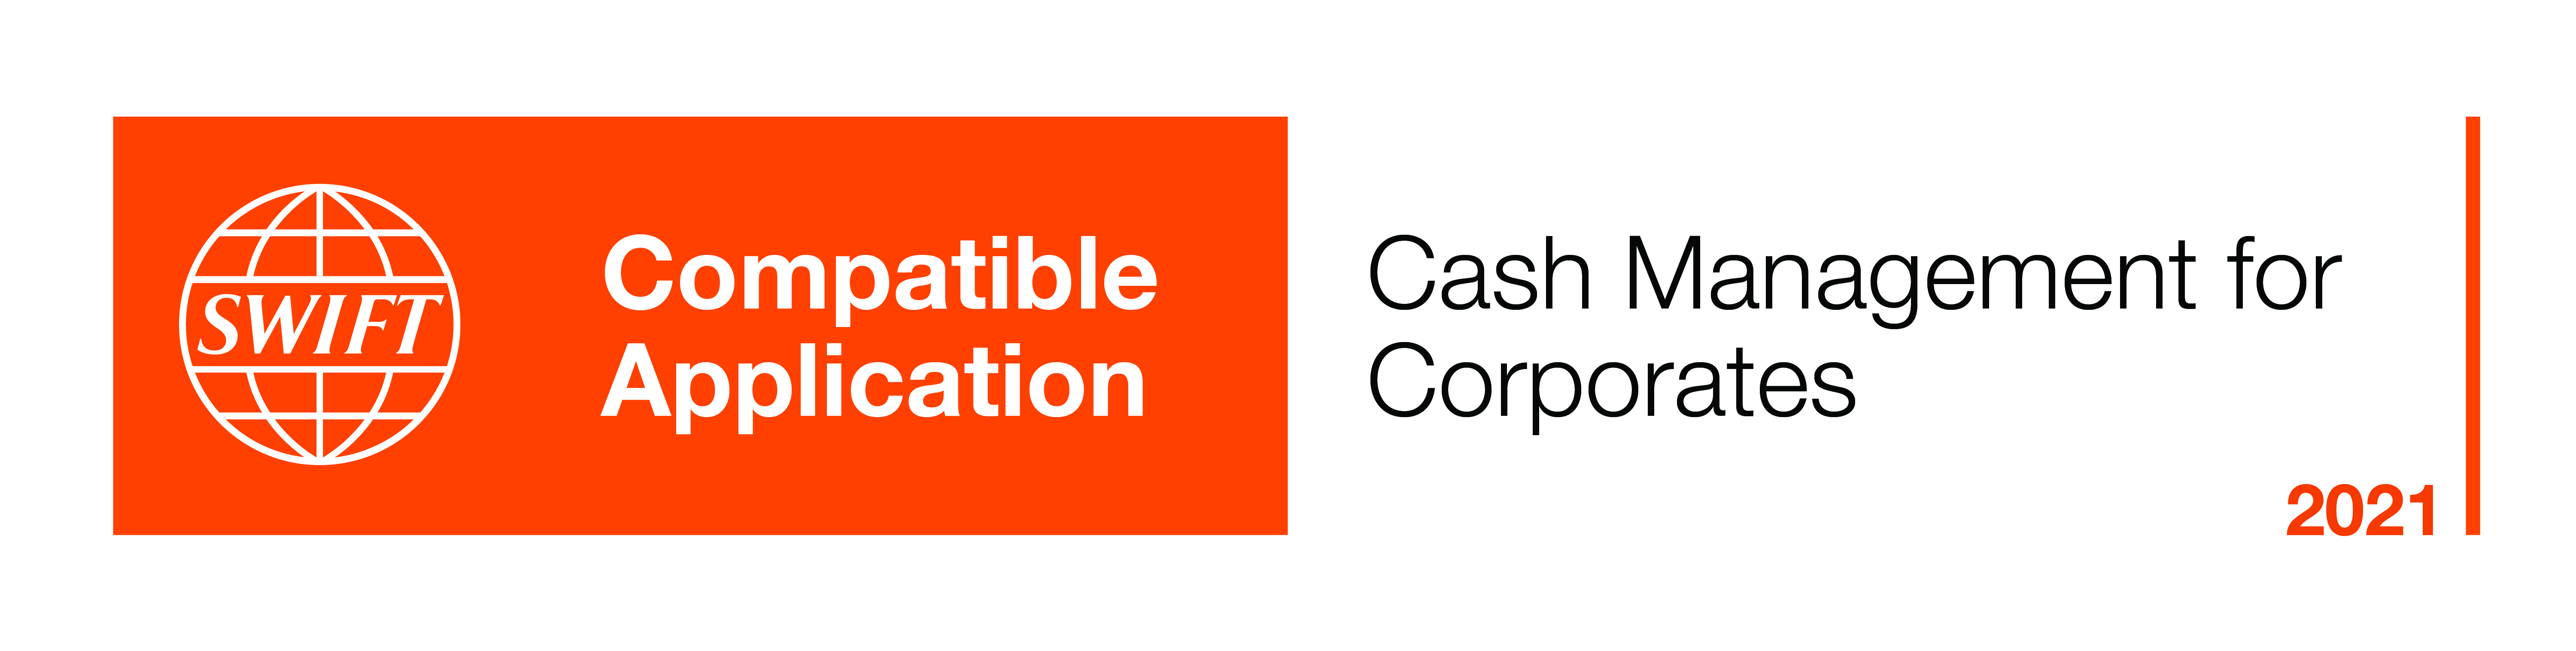 SWIFT Compatible Application Cash Management for Corporates 2021_high res